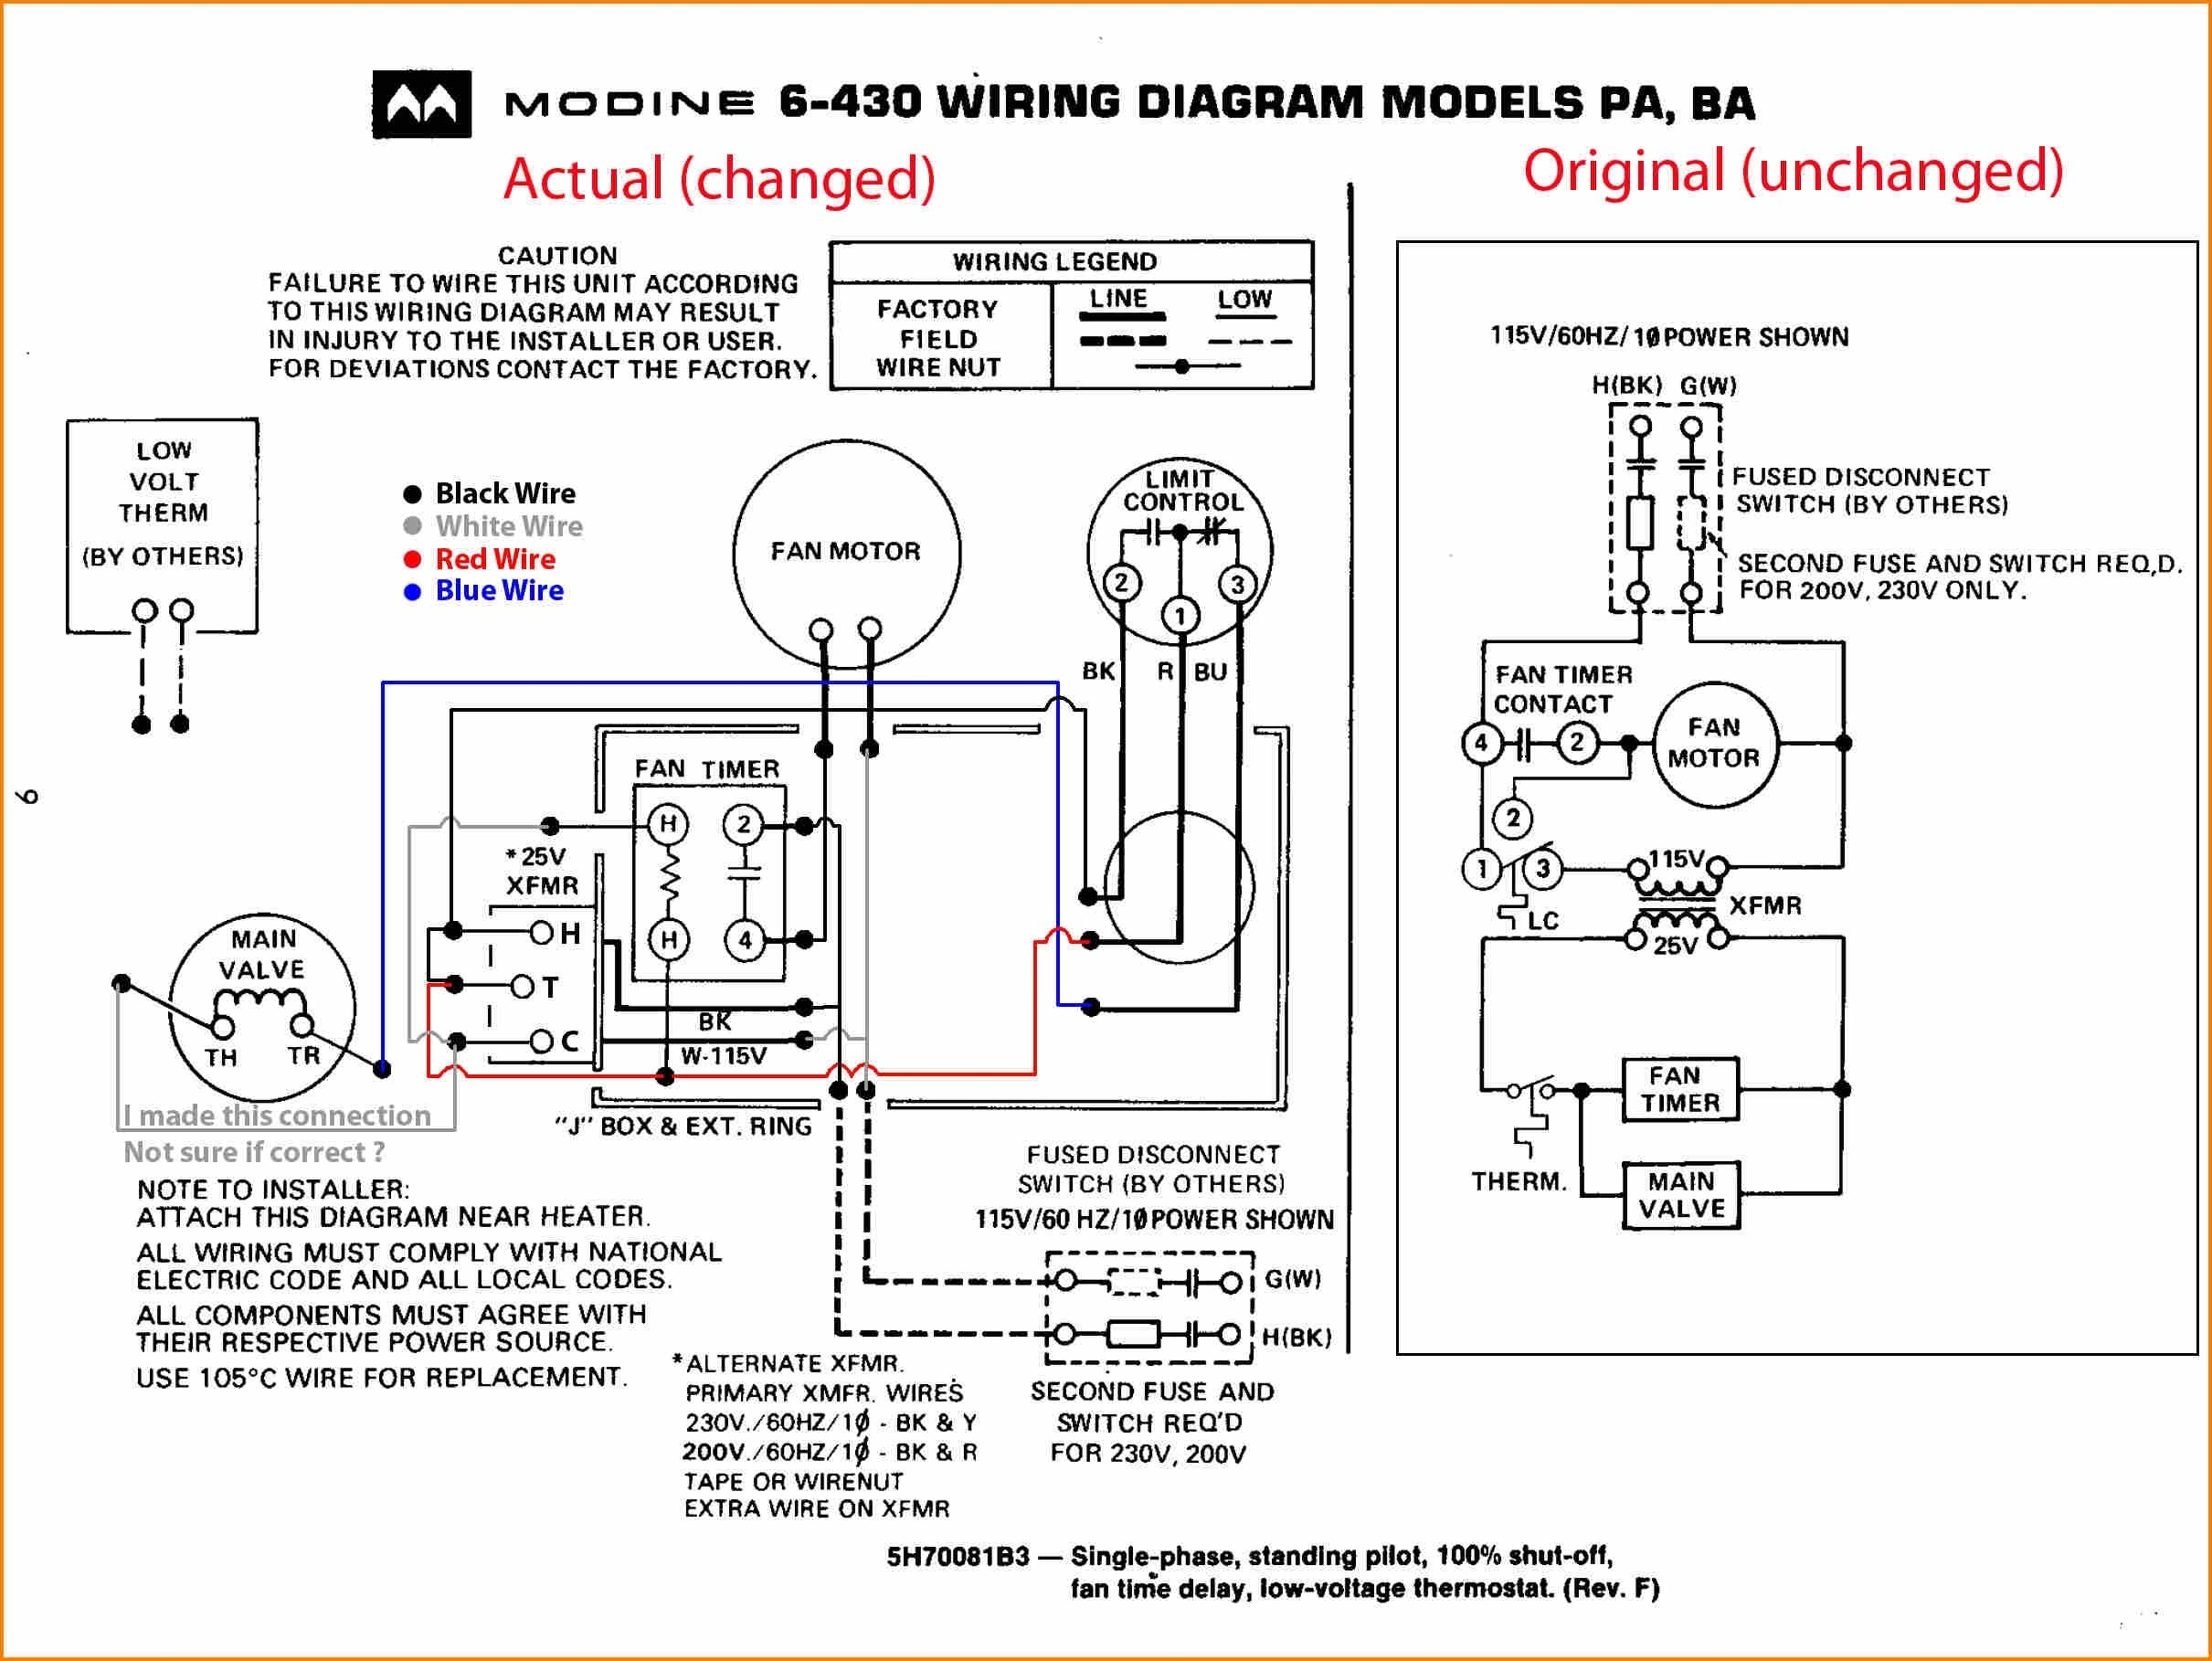 fasco d701 wiring diagram | free wiring diagram furnace wiring diagram for ge